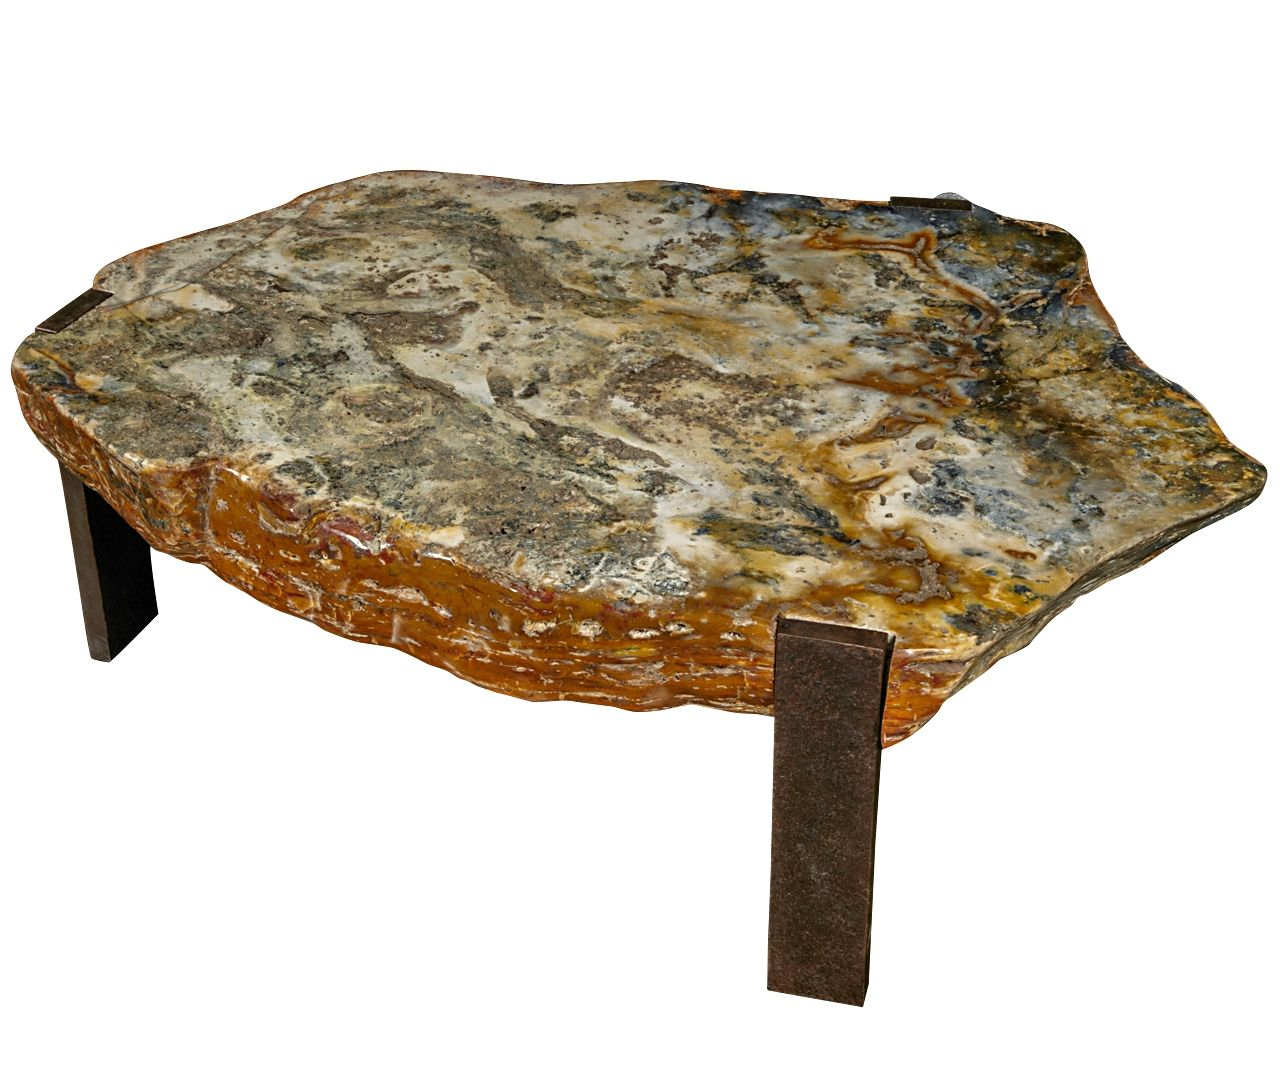 Hard. Nice. Rustic Stone Top Coffee Table | noteable furniture ...